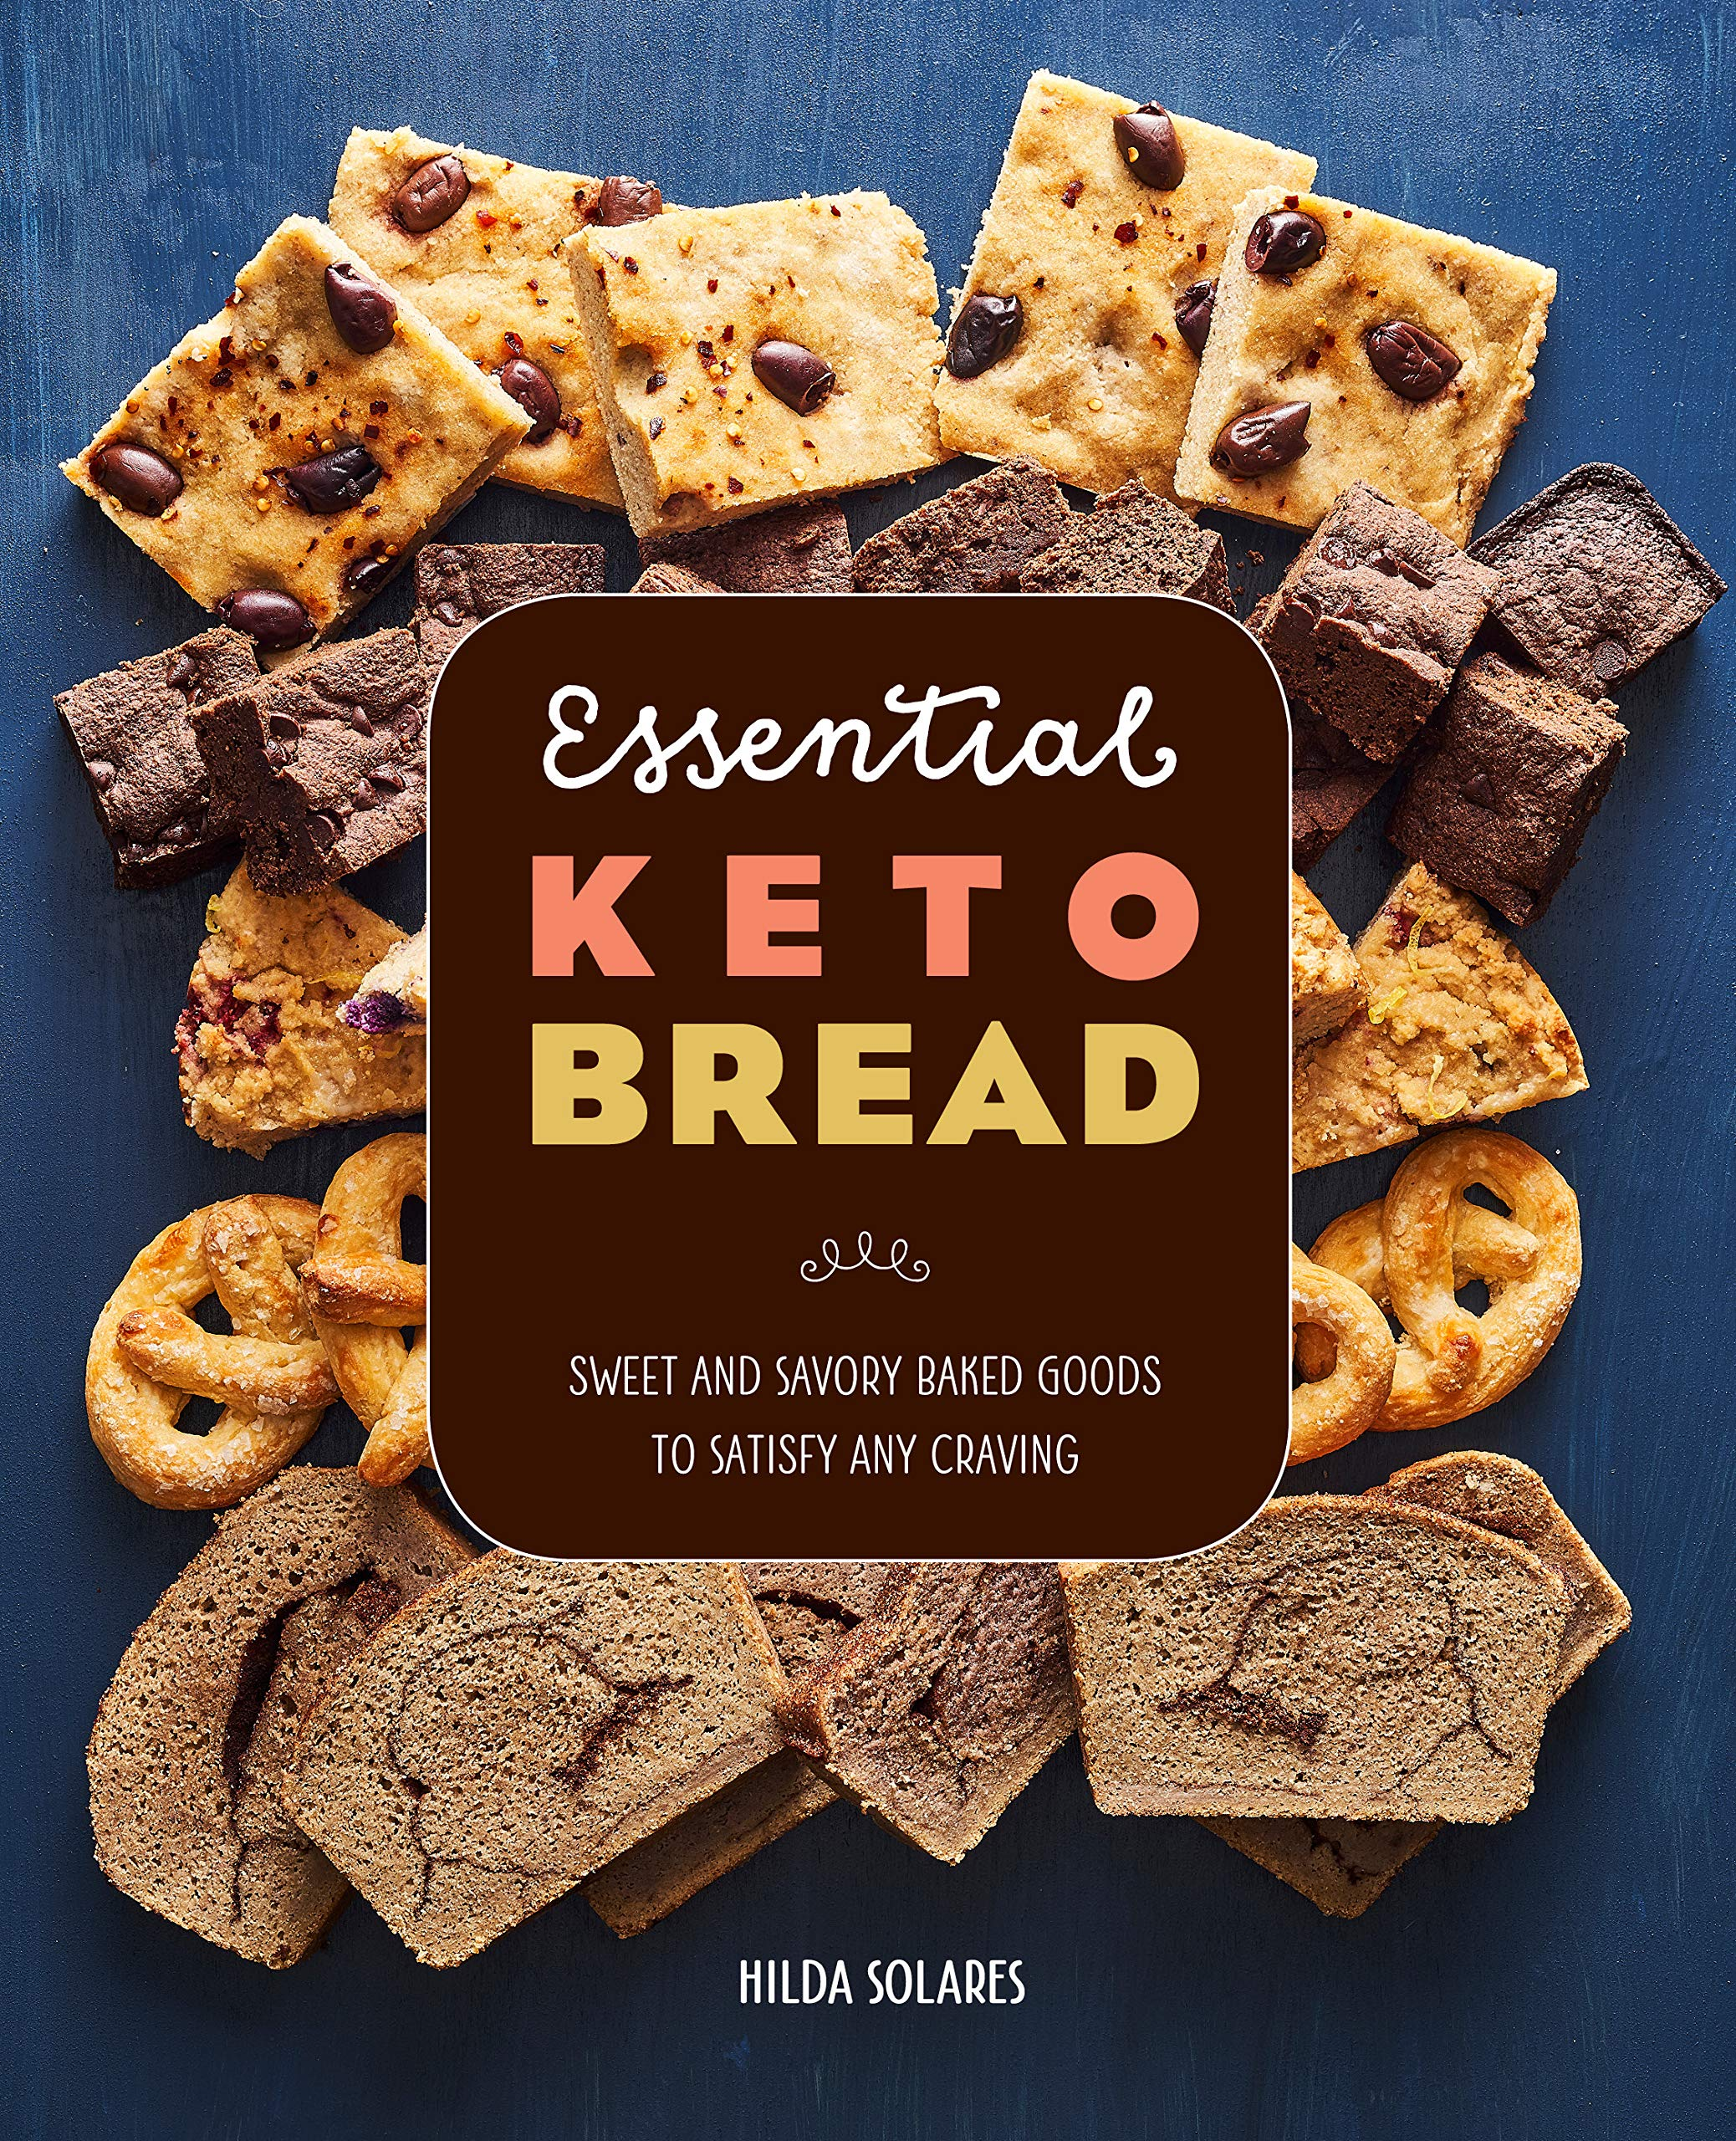 Essential Keto Bread: Sweet and Savory Baked Goods to Satisfy Any Craving 1